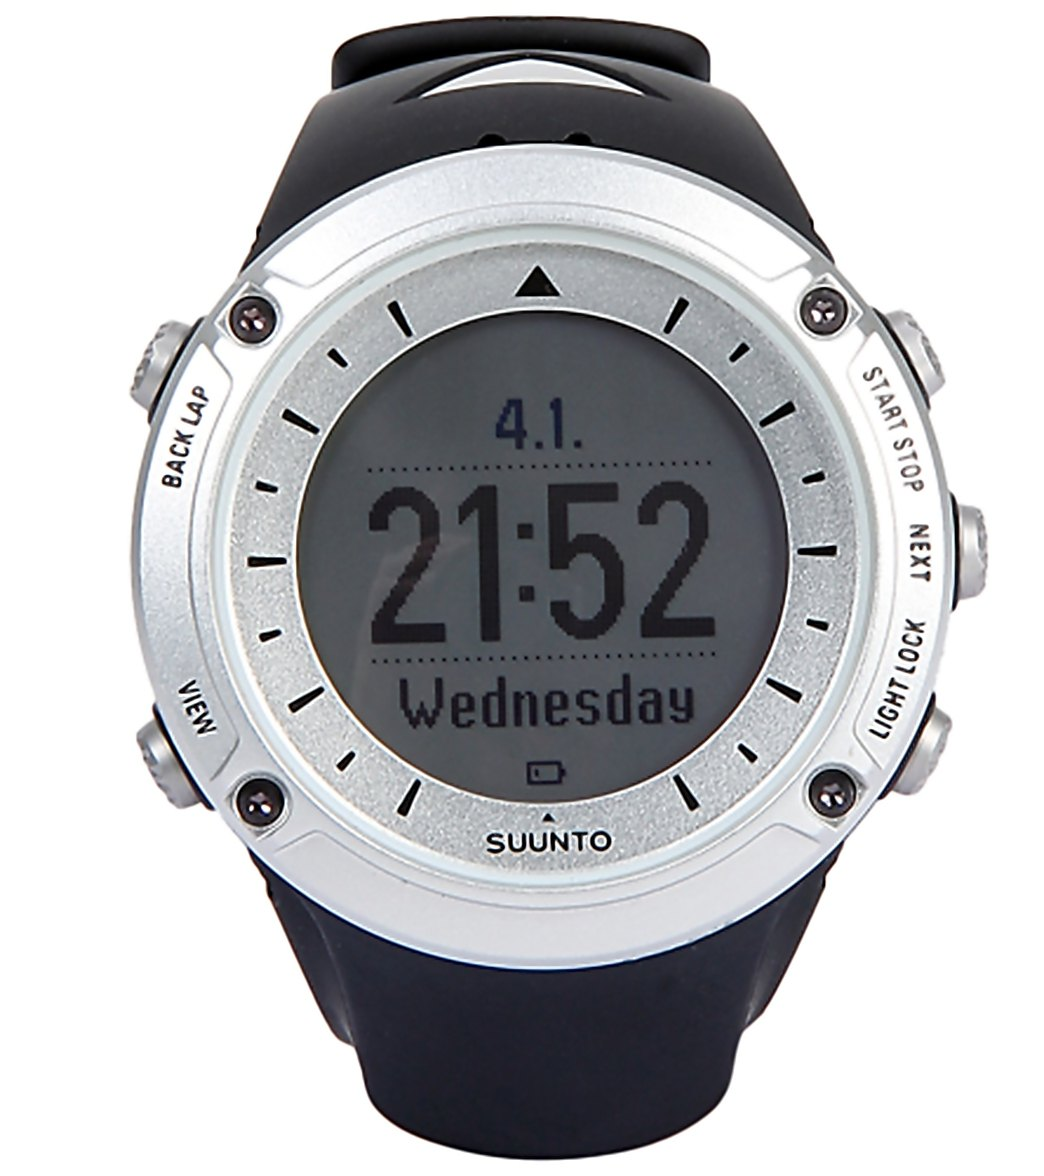 Suunto Ambit Hr Gps Watch At Free Shipping Ambit3 Sport Black For Outdoor Sports